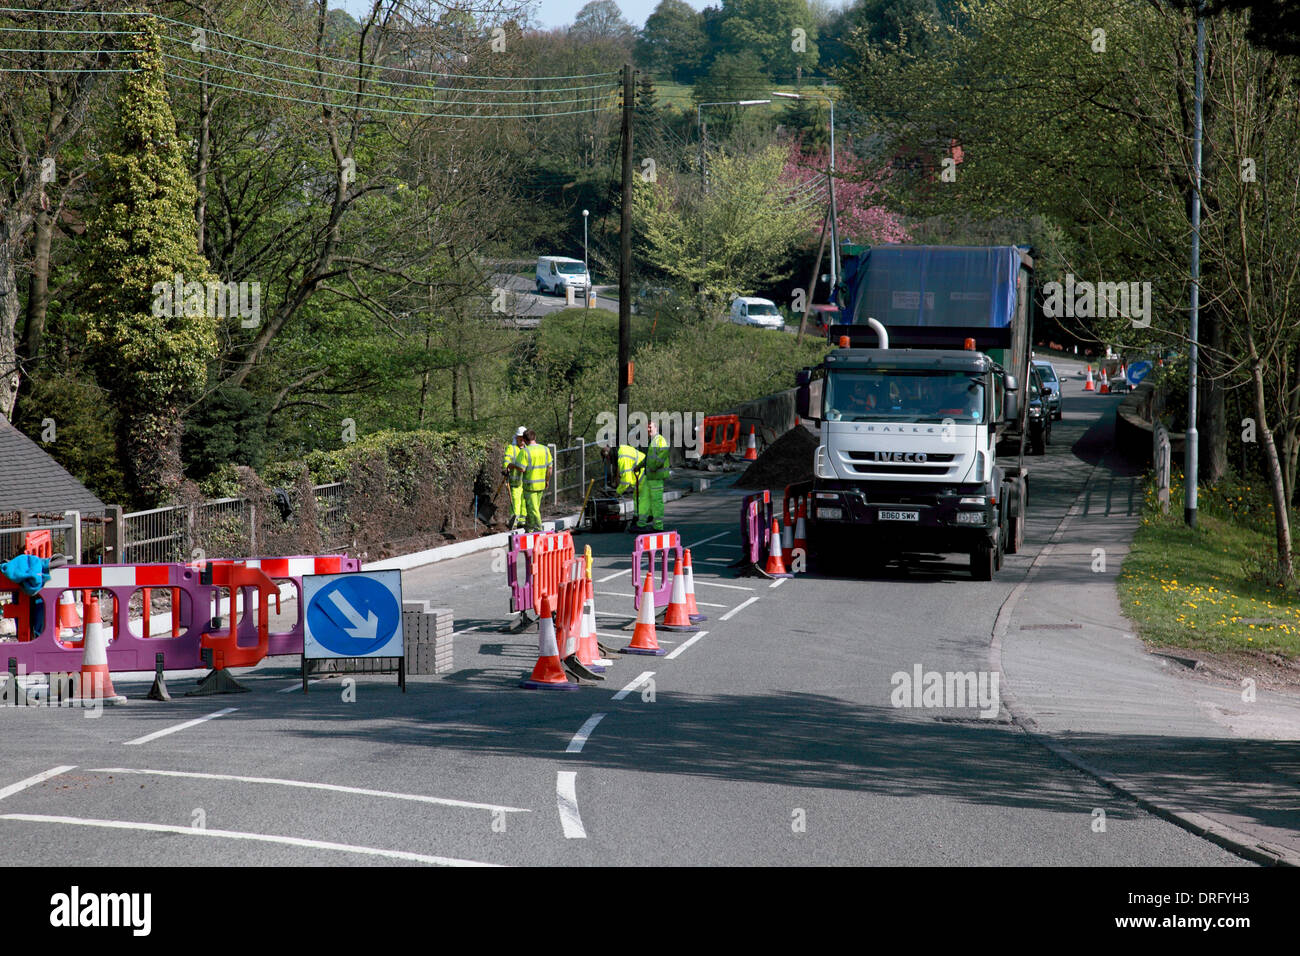 Installation of a new kerb on the A520 Cheadle Road at Cheddleton, Staffordshire Moorlands - Stock Image